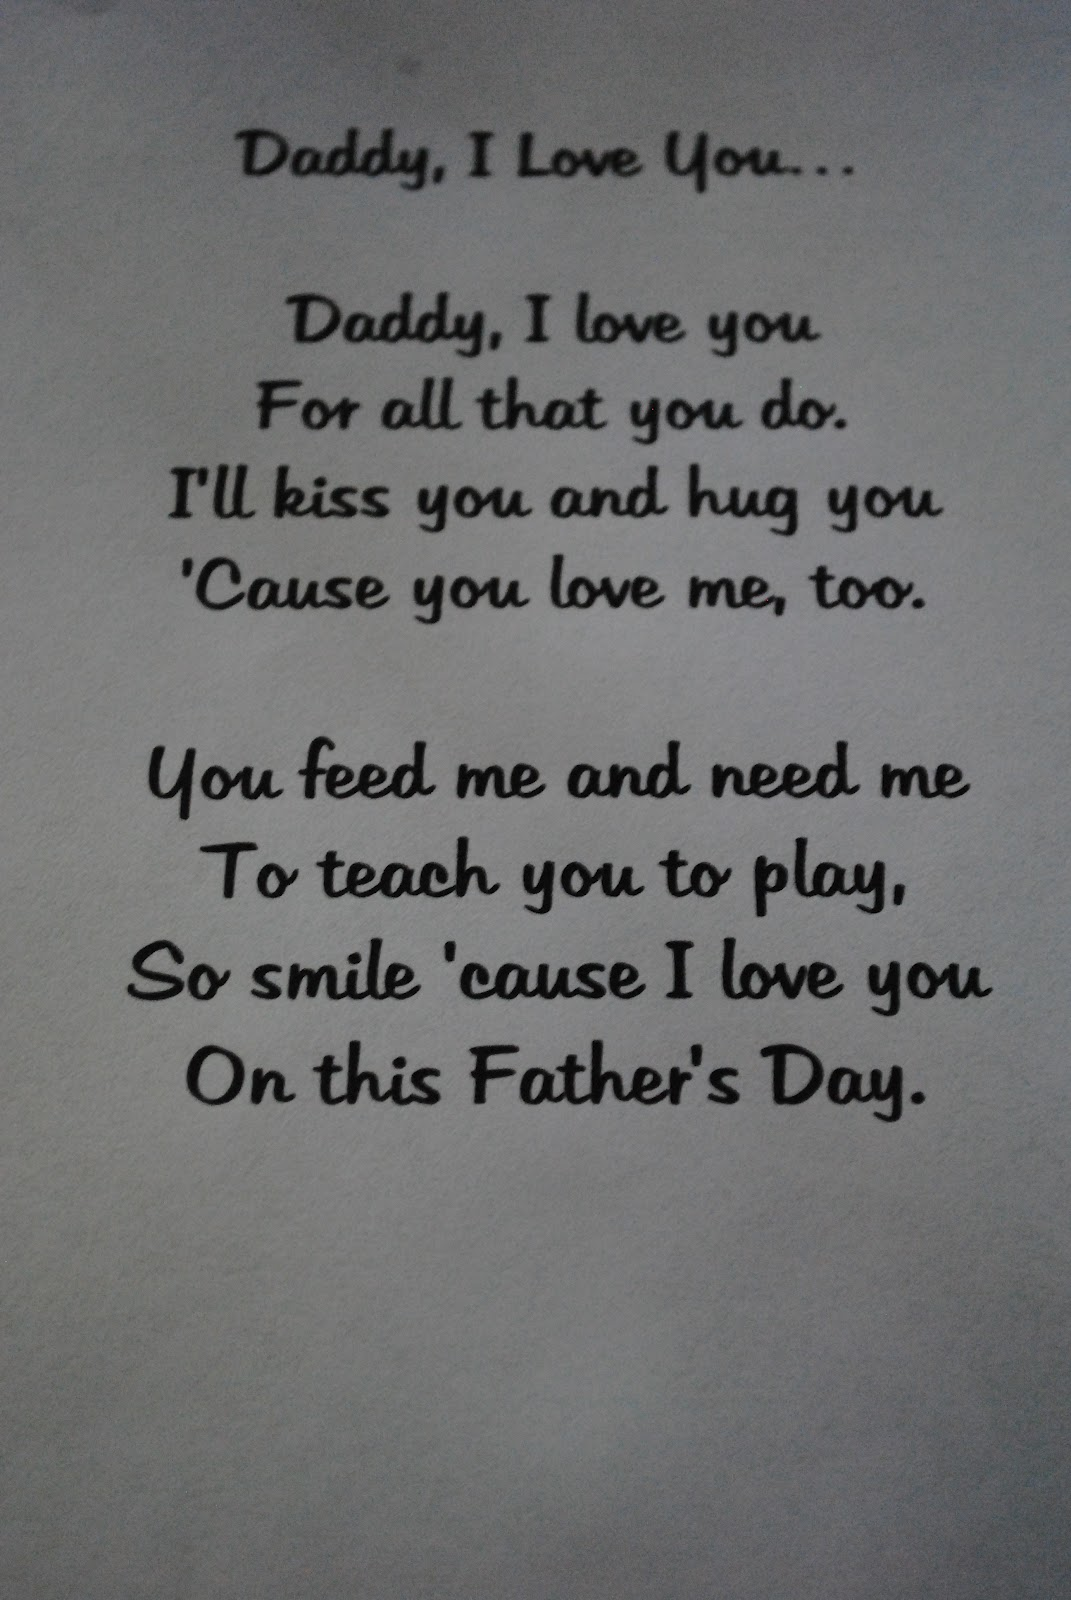 fathersday poems